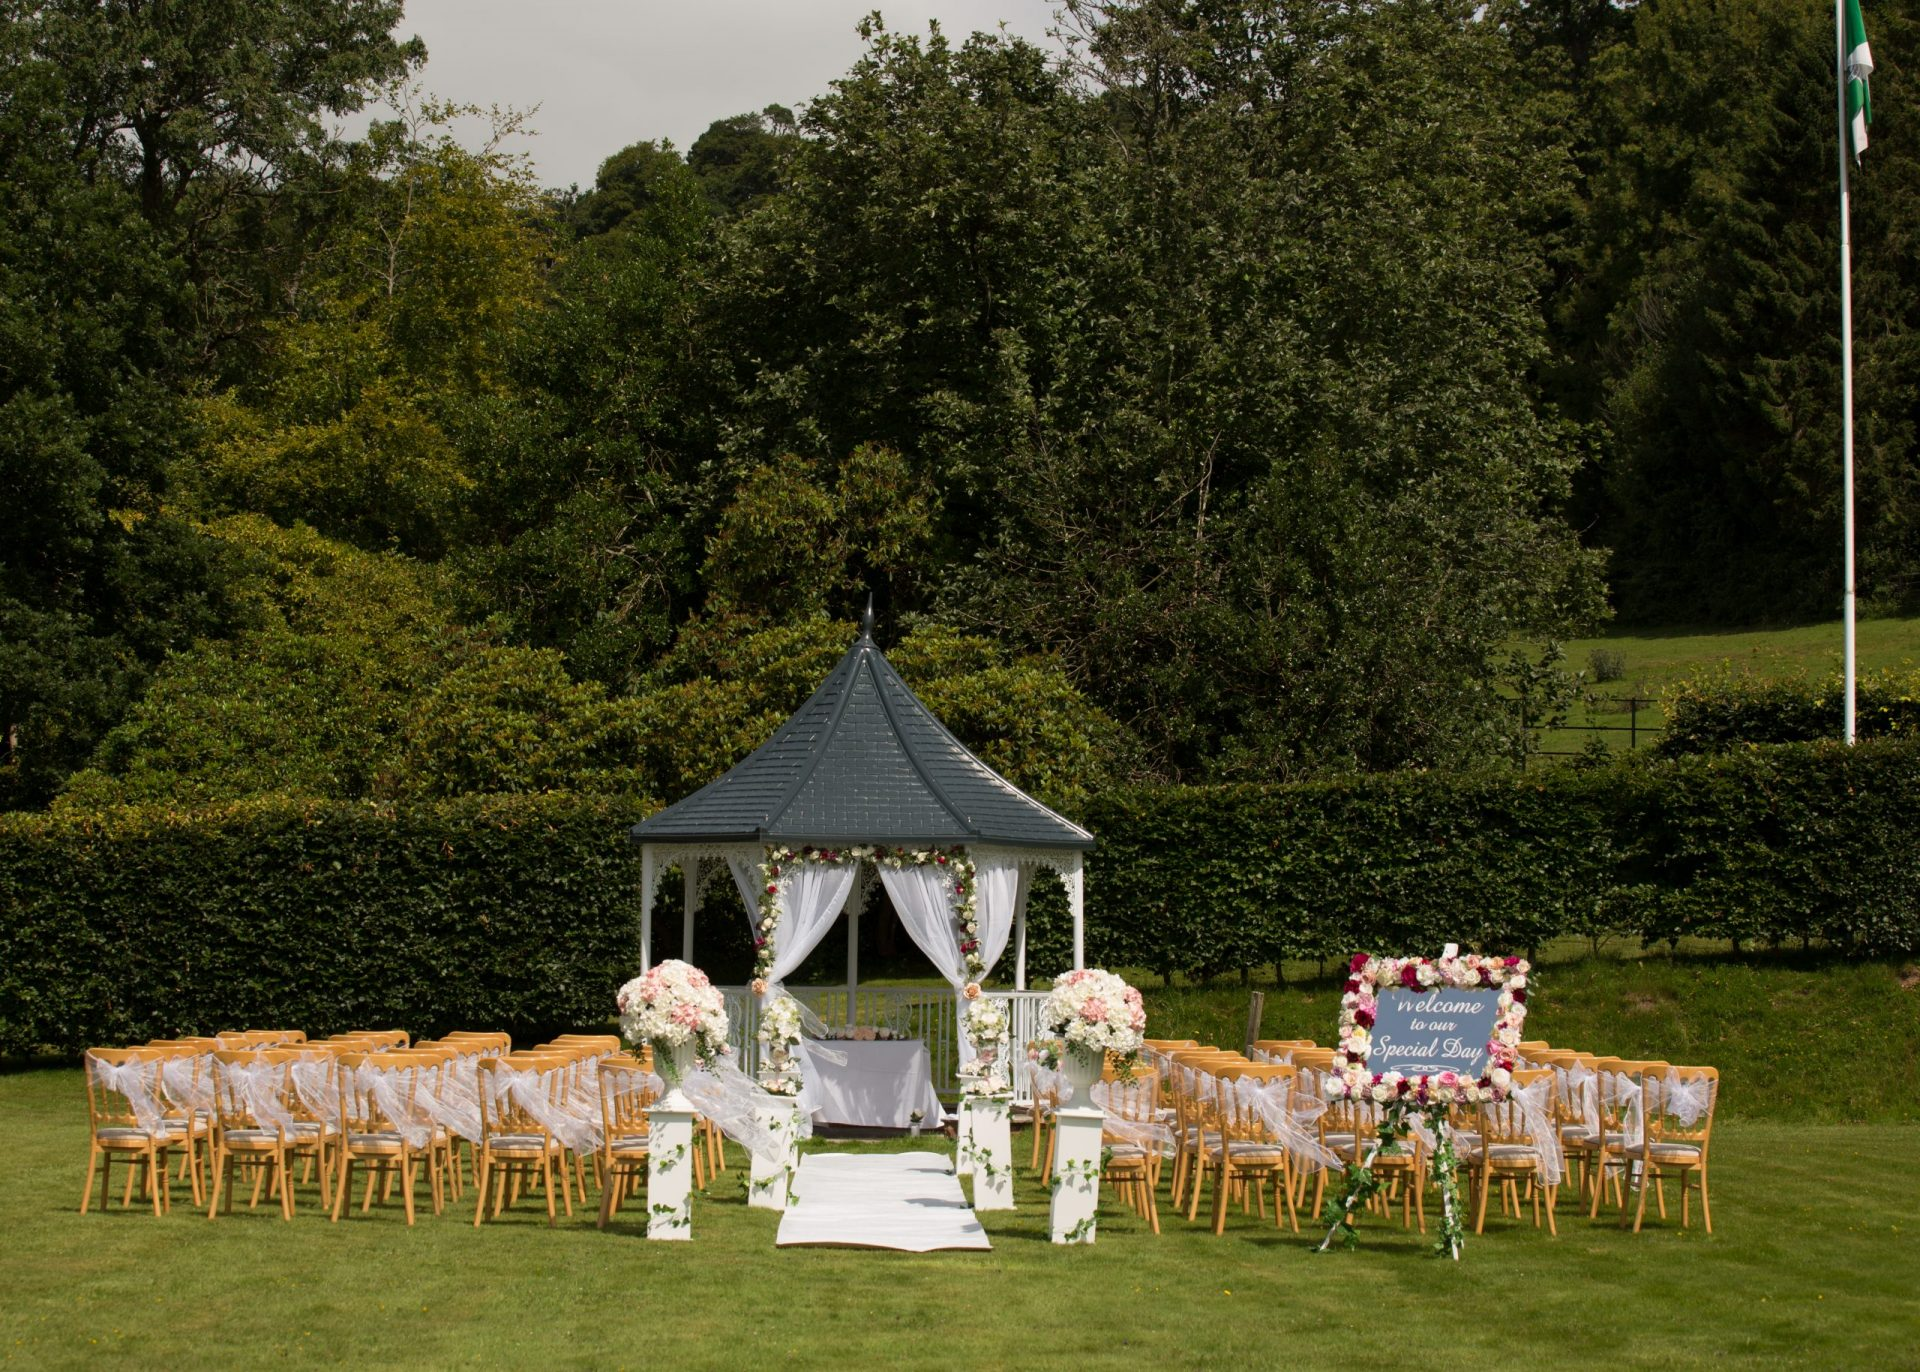 Our Tips for having an outdoor ceremony